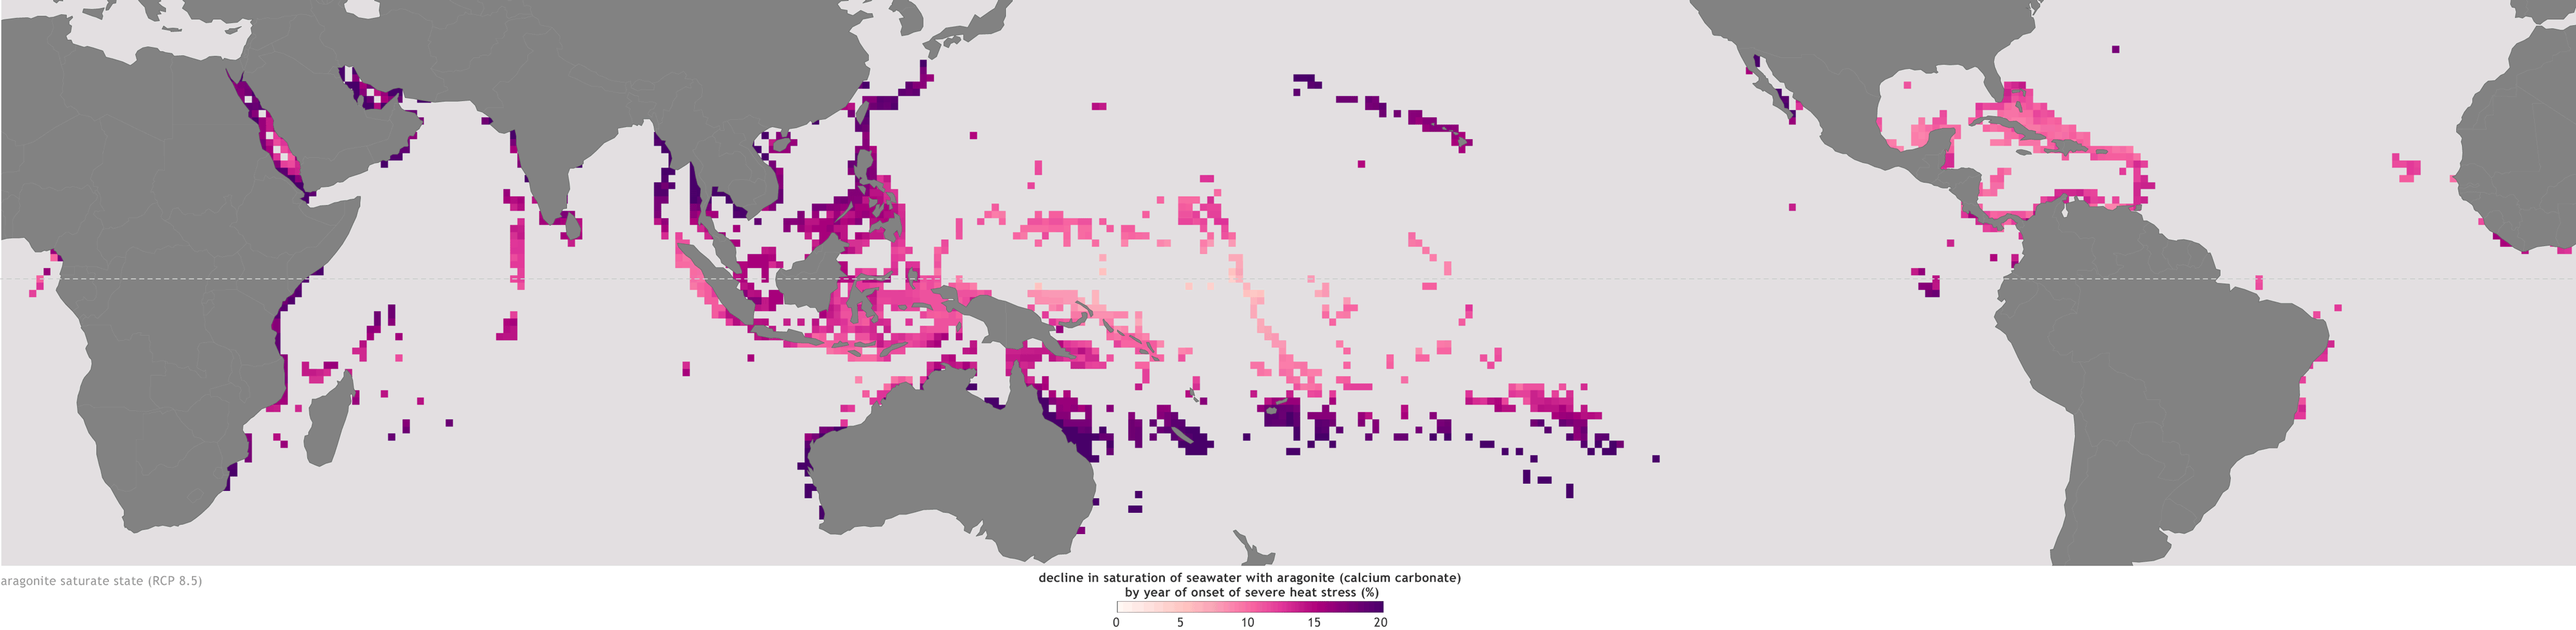 No safe haven for coral from the combined impacts of warming